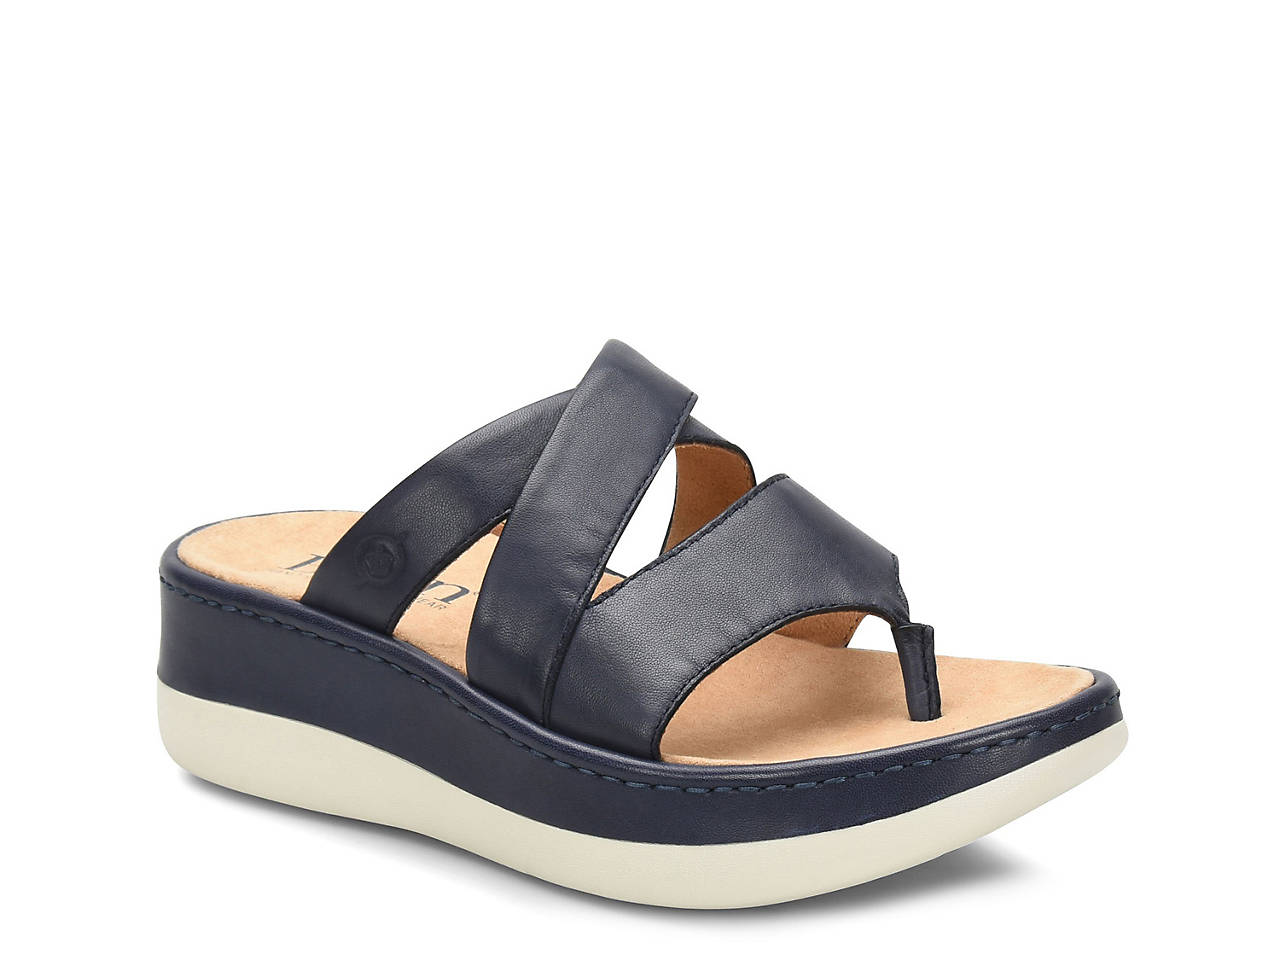 e9fda628412c Born Uinta Wedge Sandal Women s Shoes